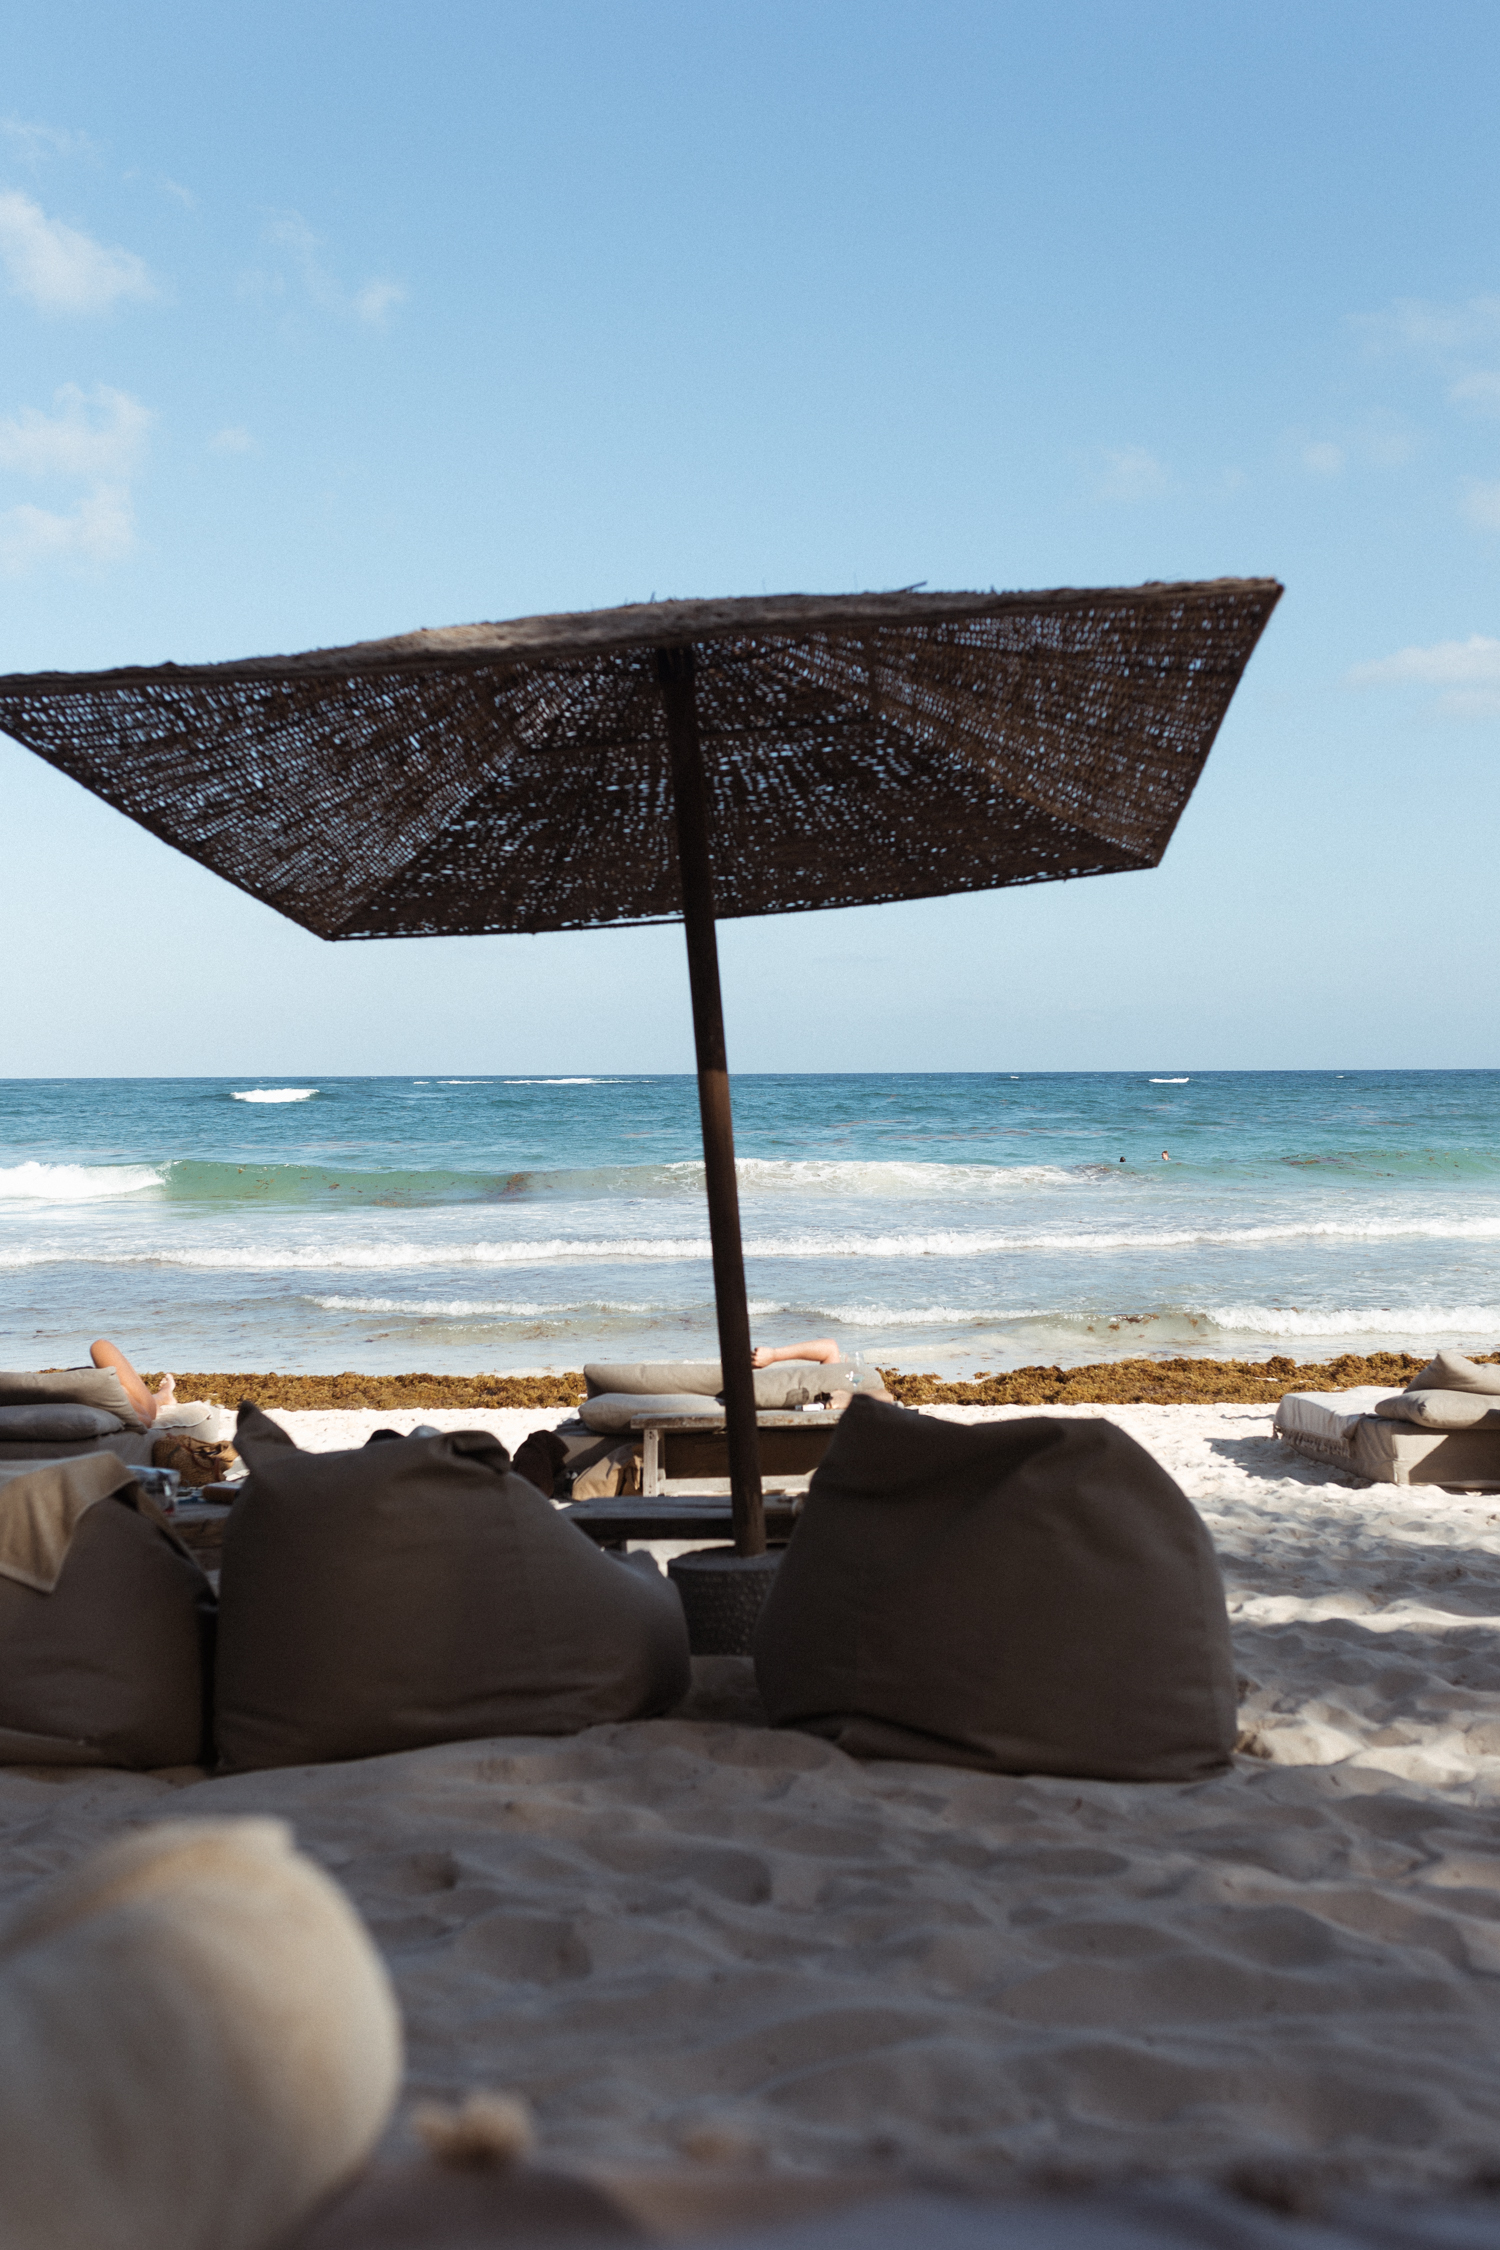 Mexico: Tulum Travel Guide, Food & Drinks - Bikinis & Passports